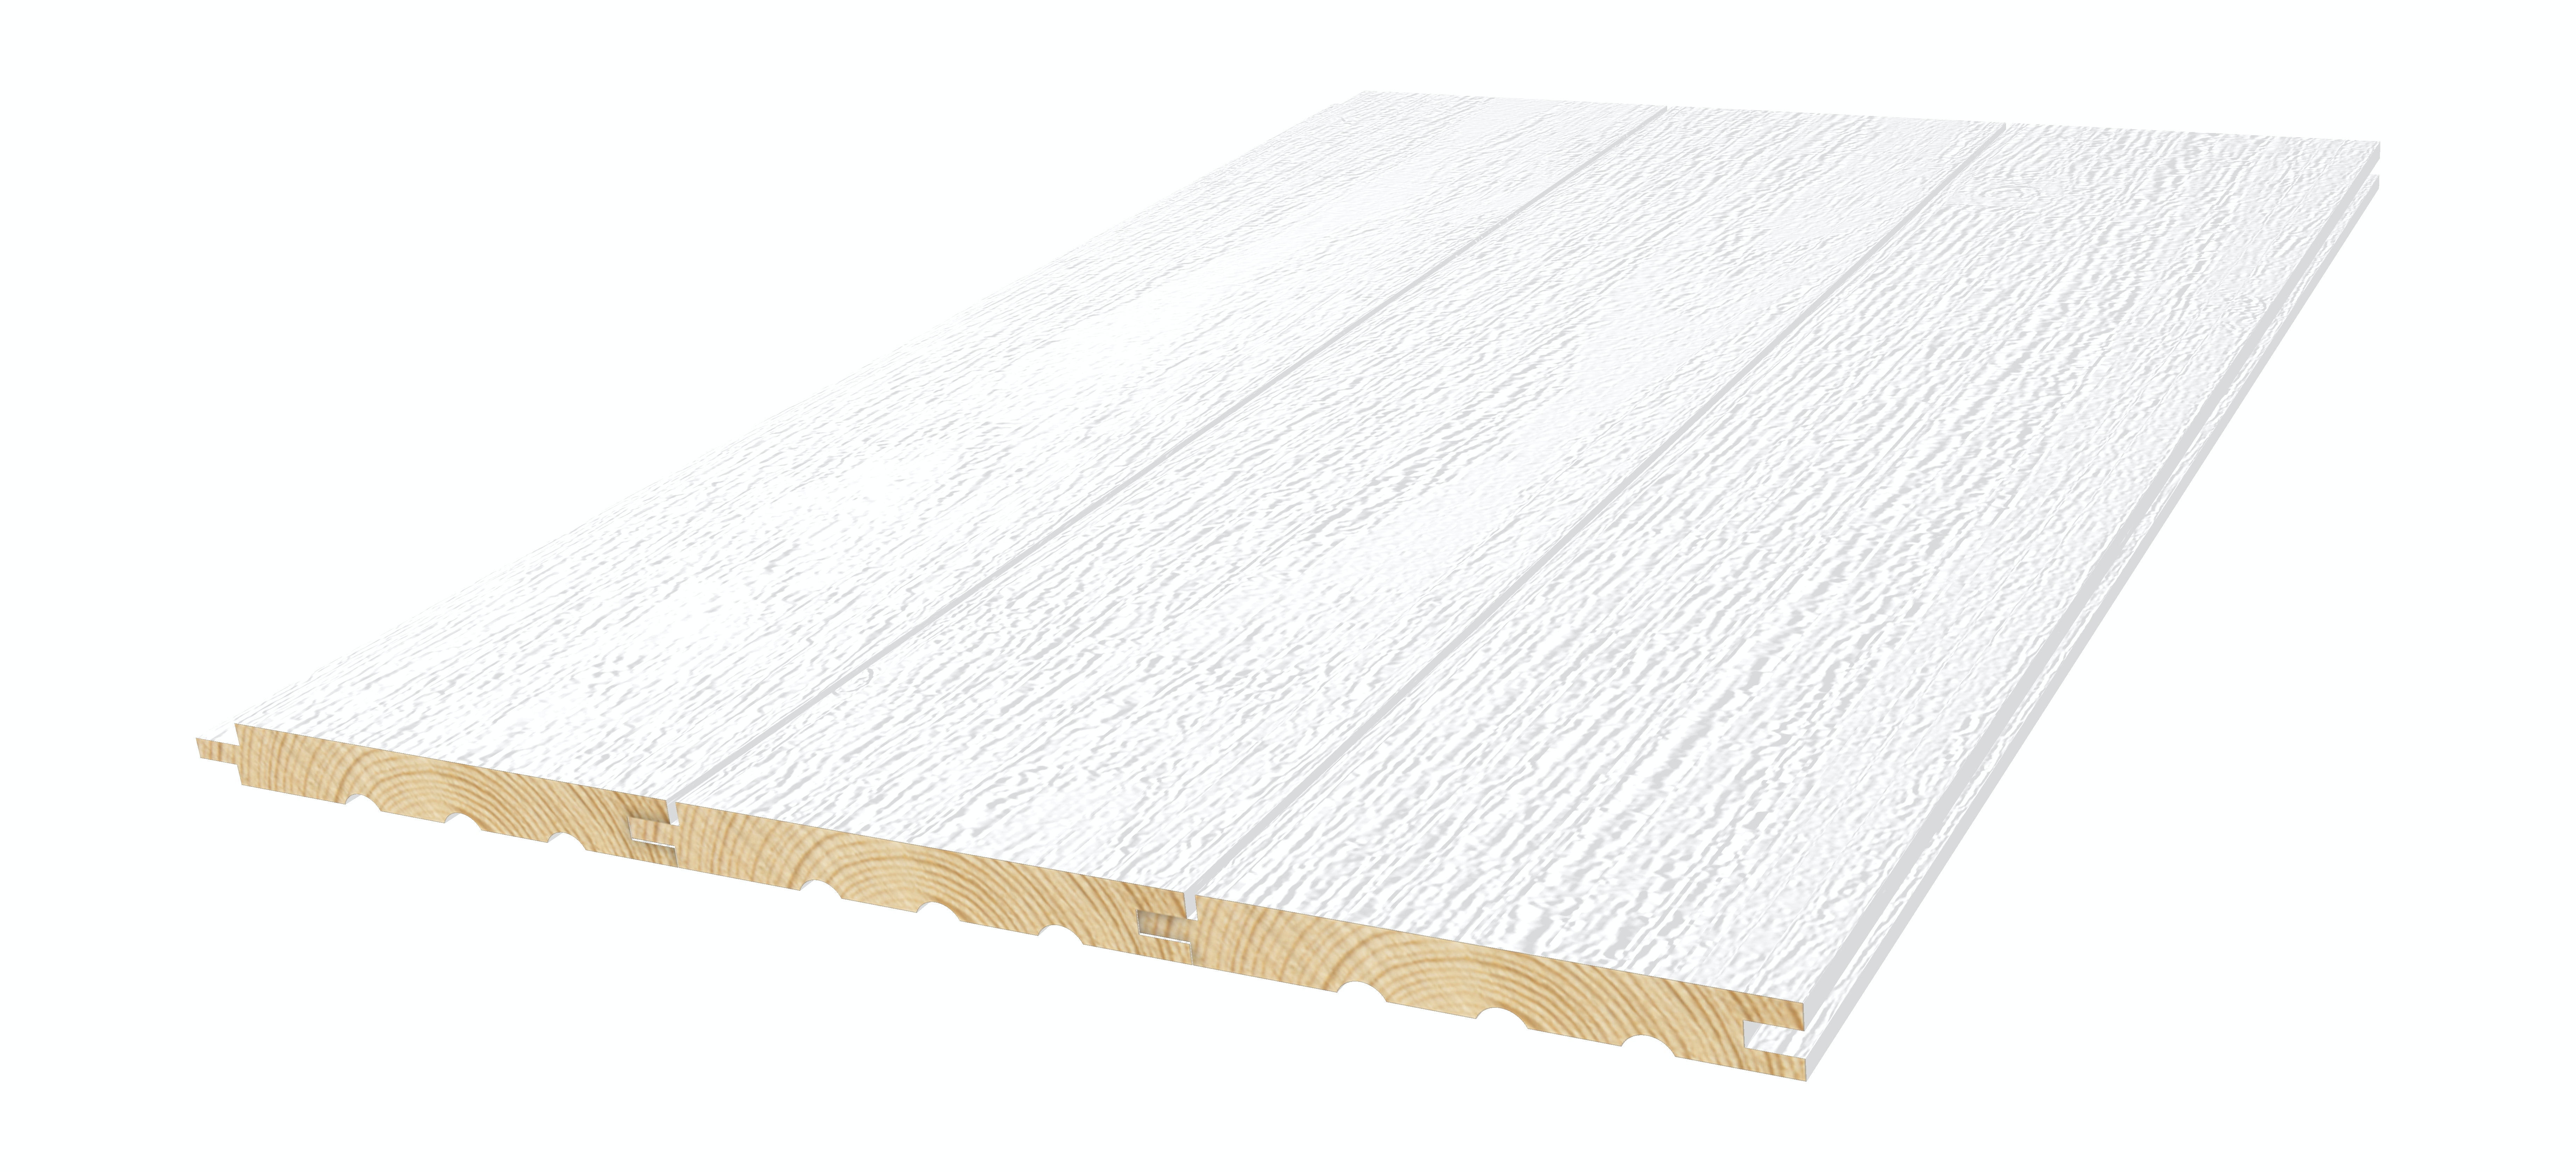 Interiörpanel Moelven Gran Trend Rough Vit 14x120